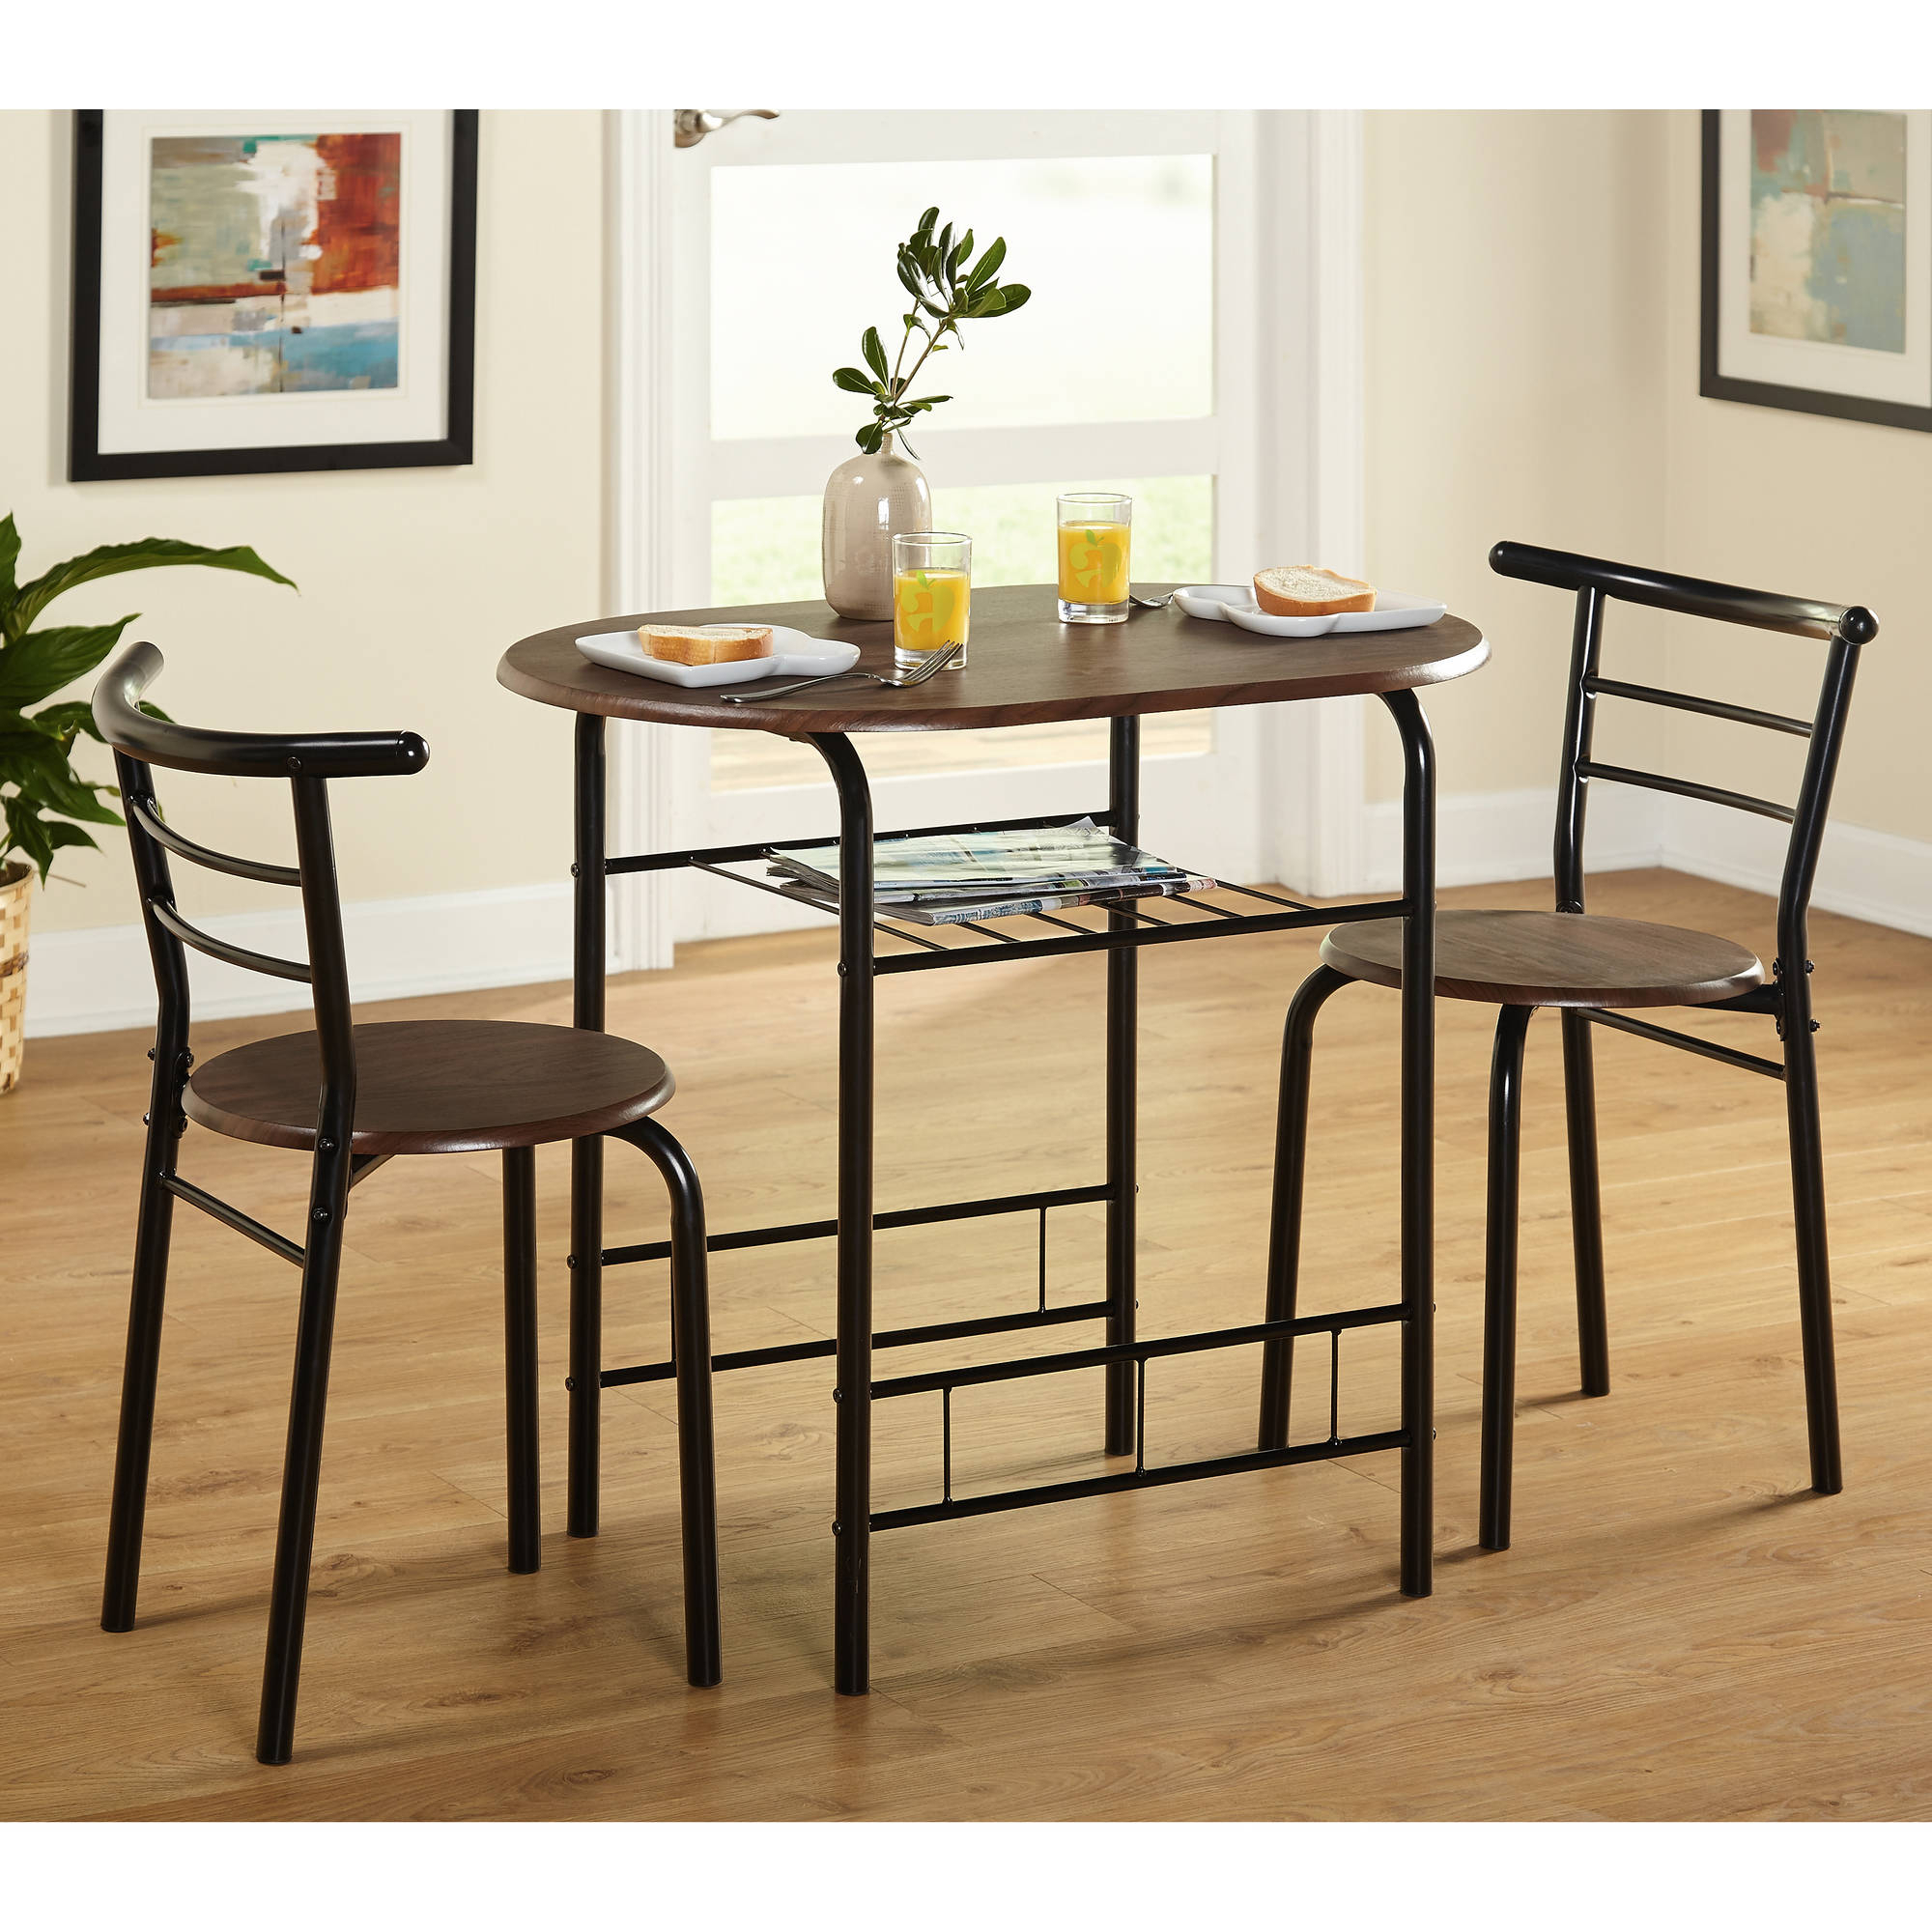 Inspiration about Tms 3 Piece Bistro Dining Set – Walmart With Regard To Popular Rossiter 3 Piece Dining Sets (#7 of 20)